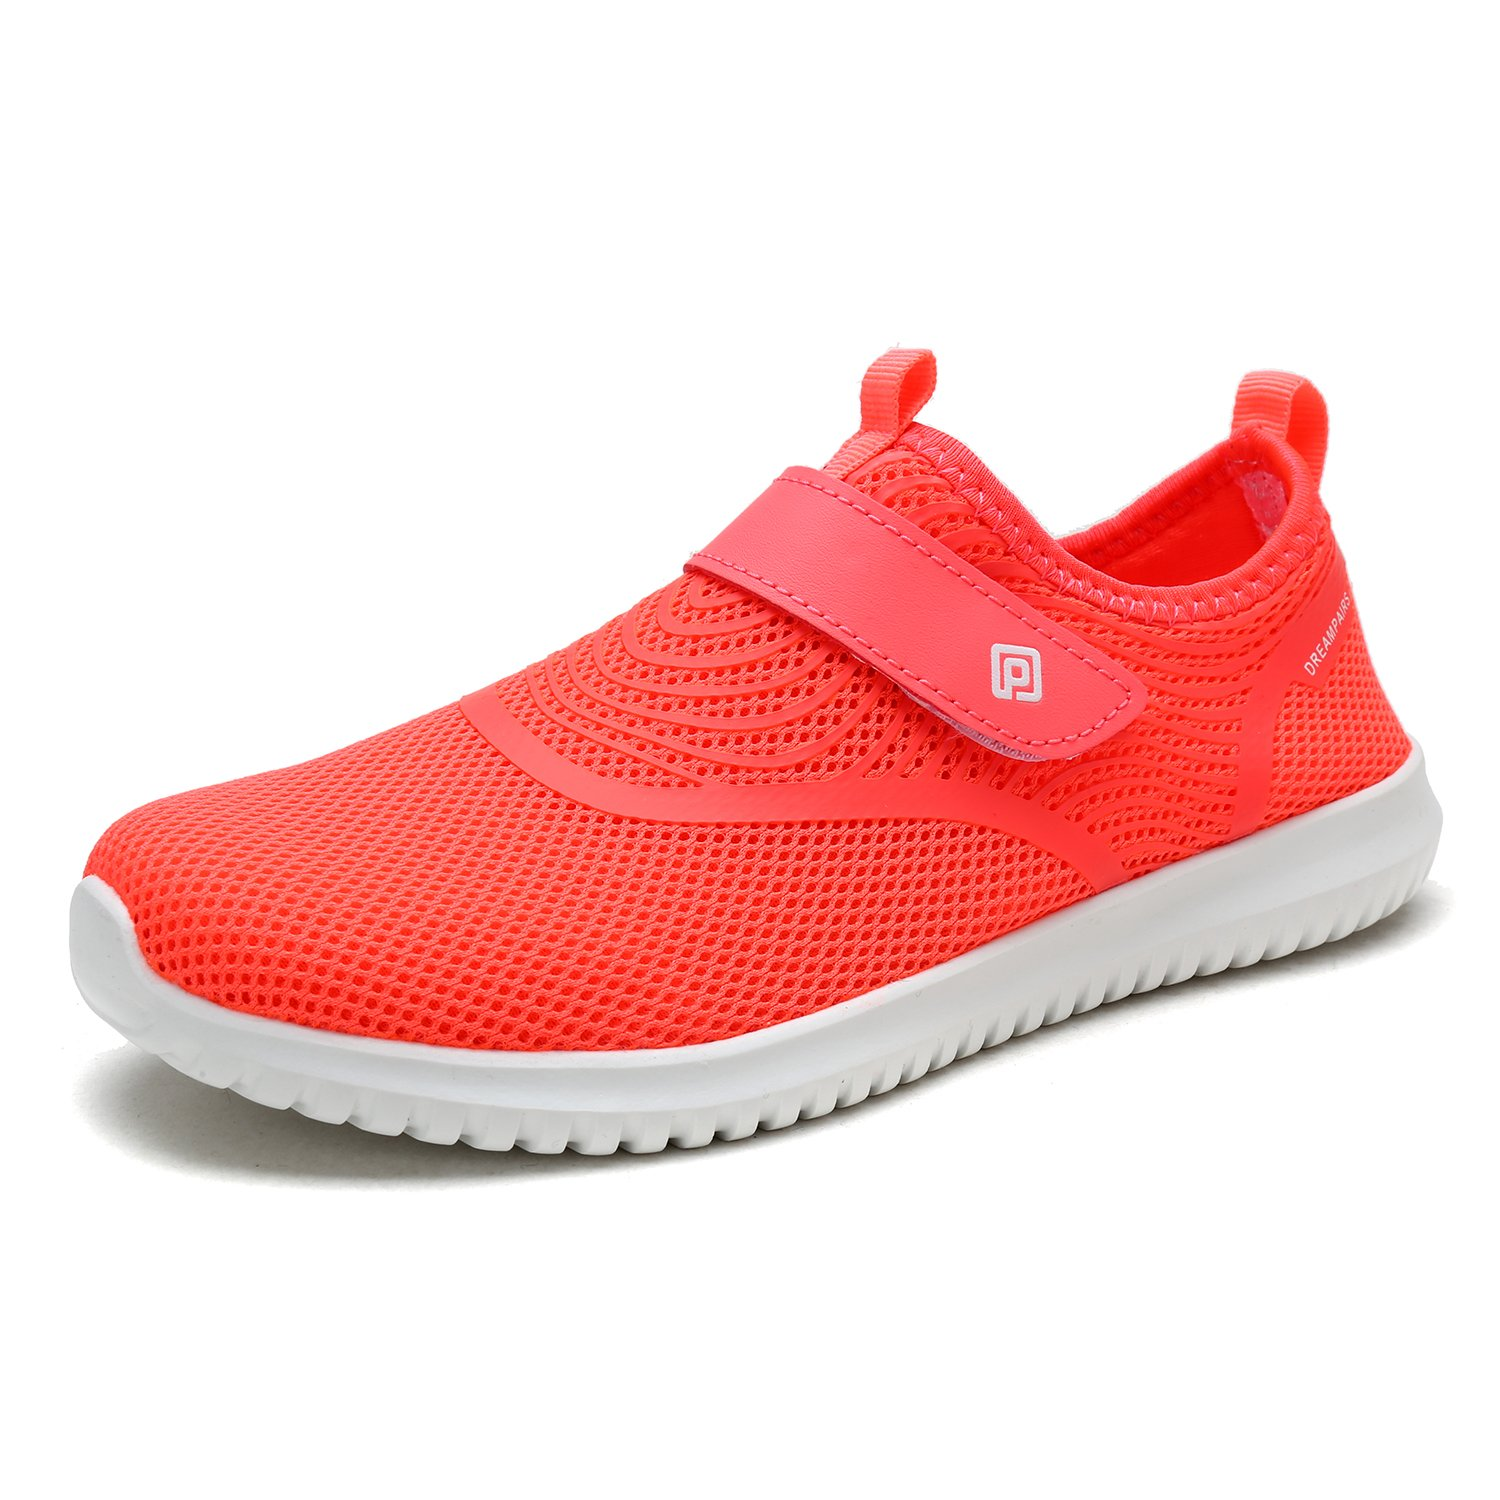 DREAM PAIRS Quick-Dry Water Shoes Sports Walking Casual Sneakers for Women B07887XDP7 8.5 M US|Coral